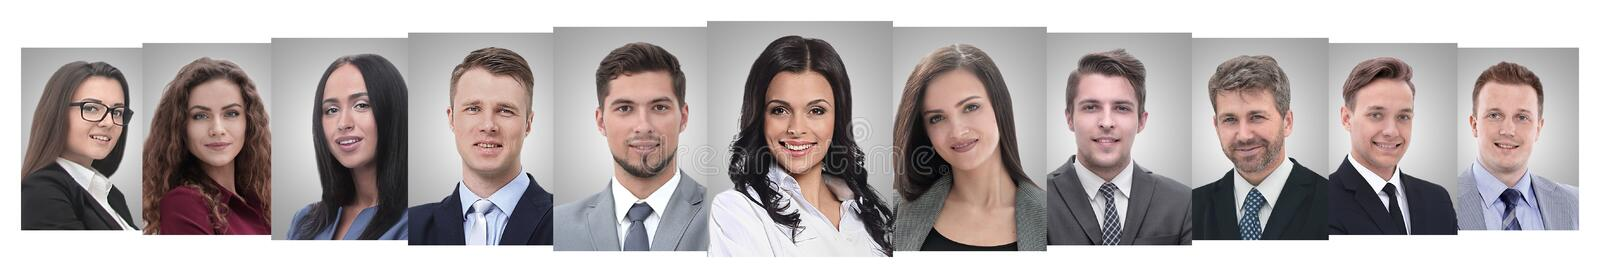 Panoramic collage of portraits of successful business people royalty free stock photos